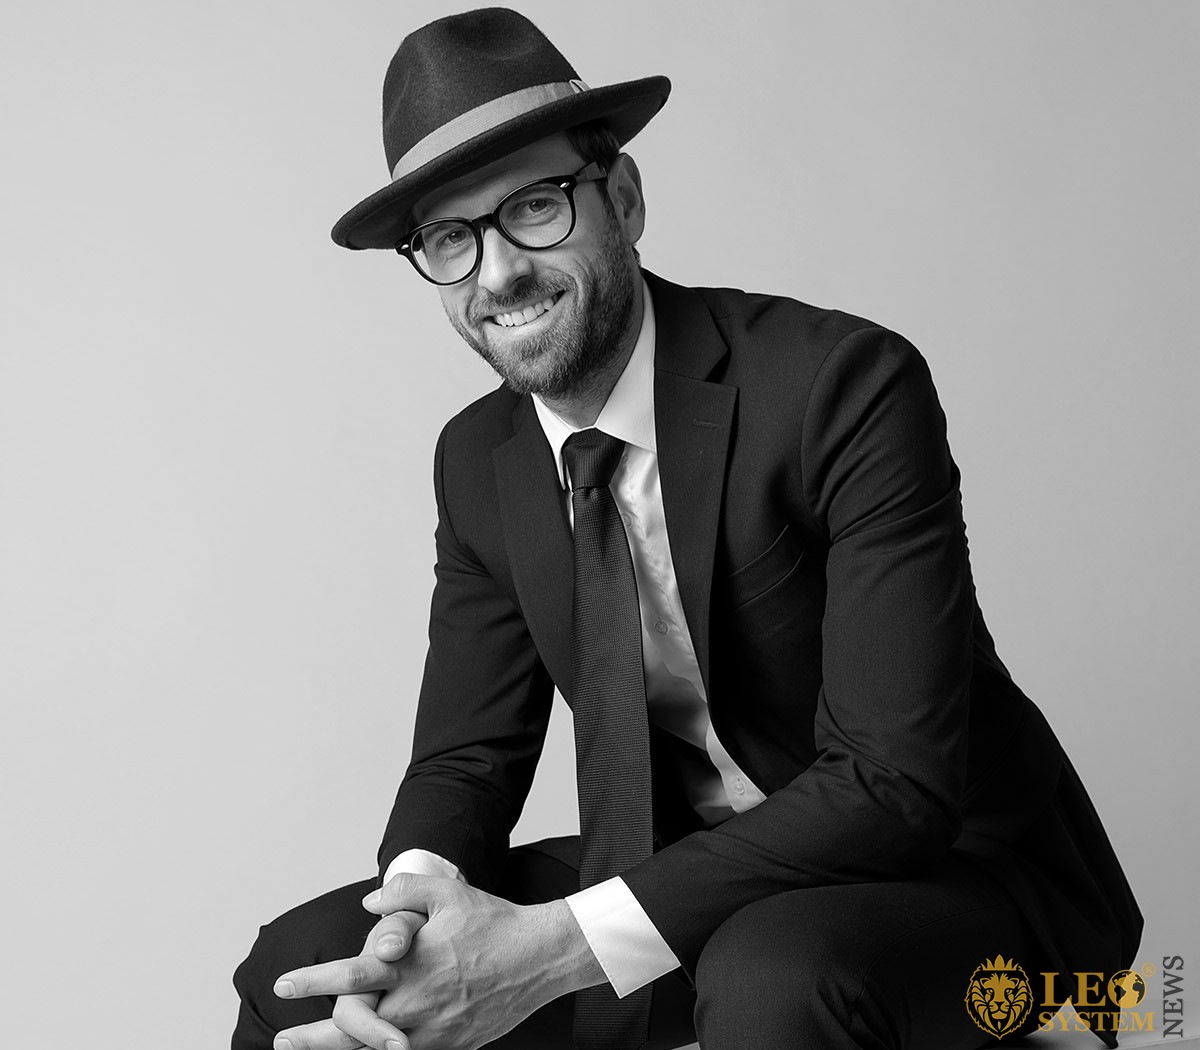 Jealous man in a business suit, hat and glasses